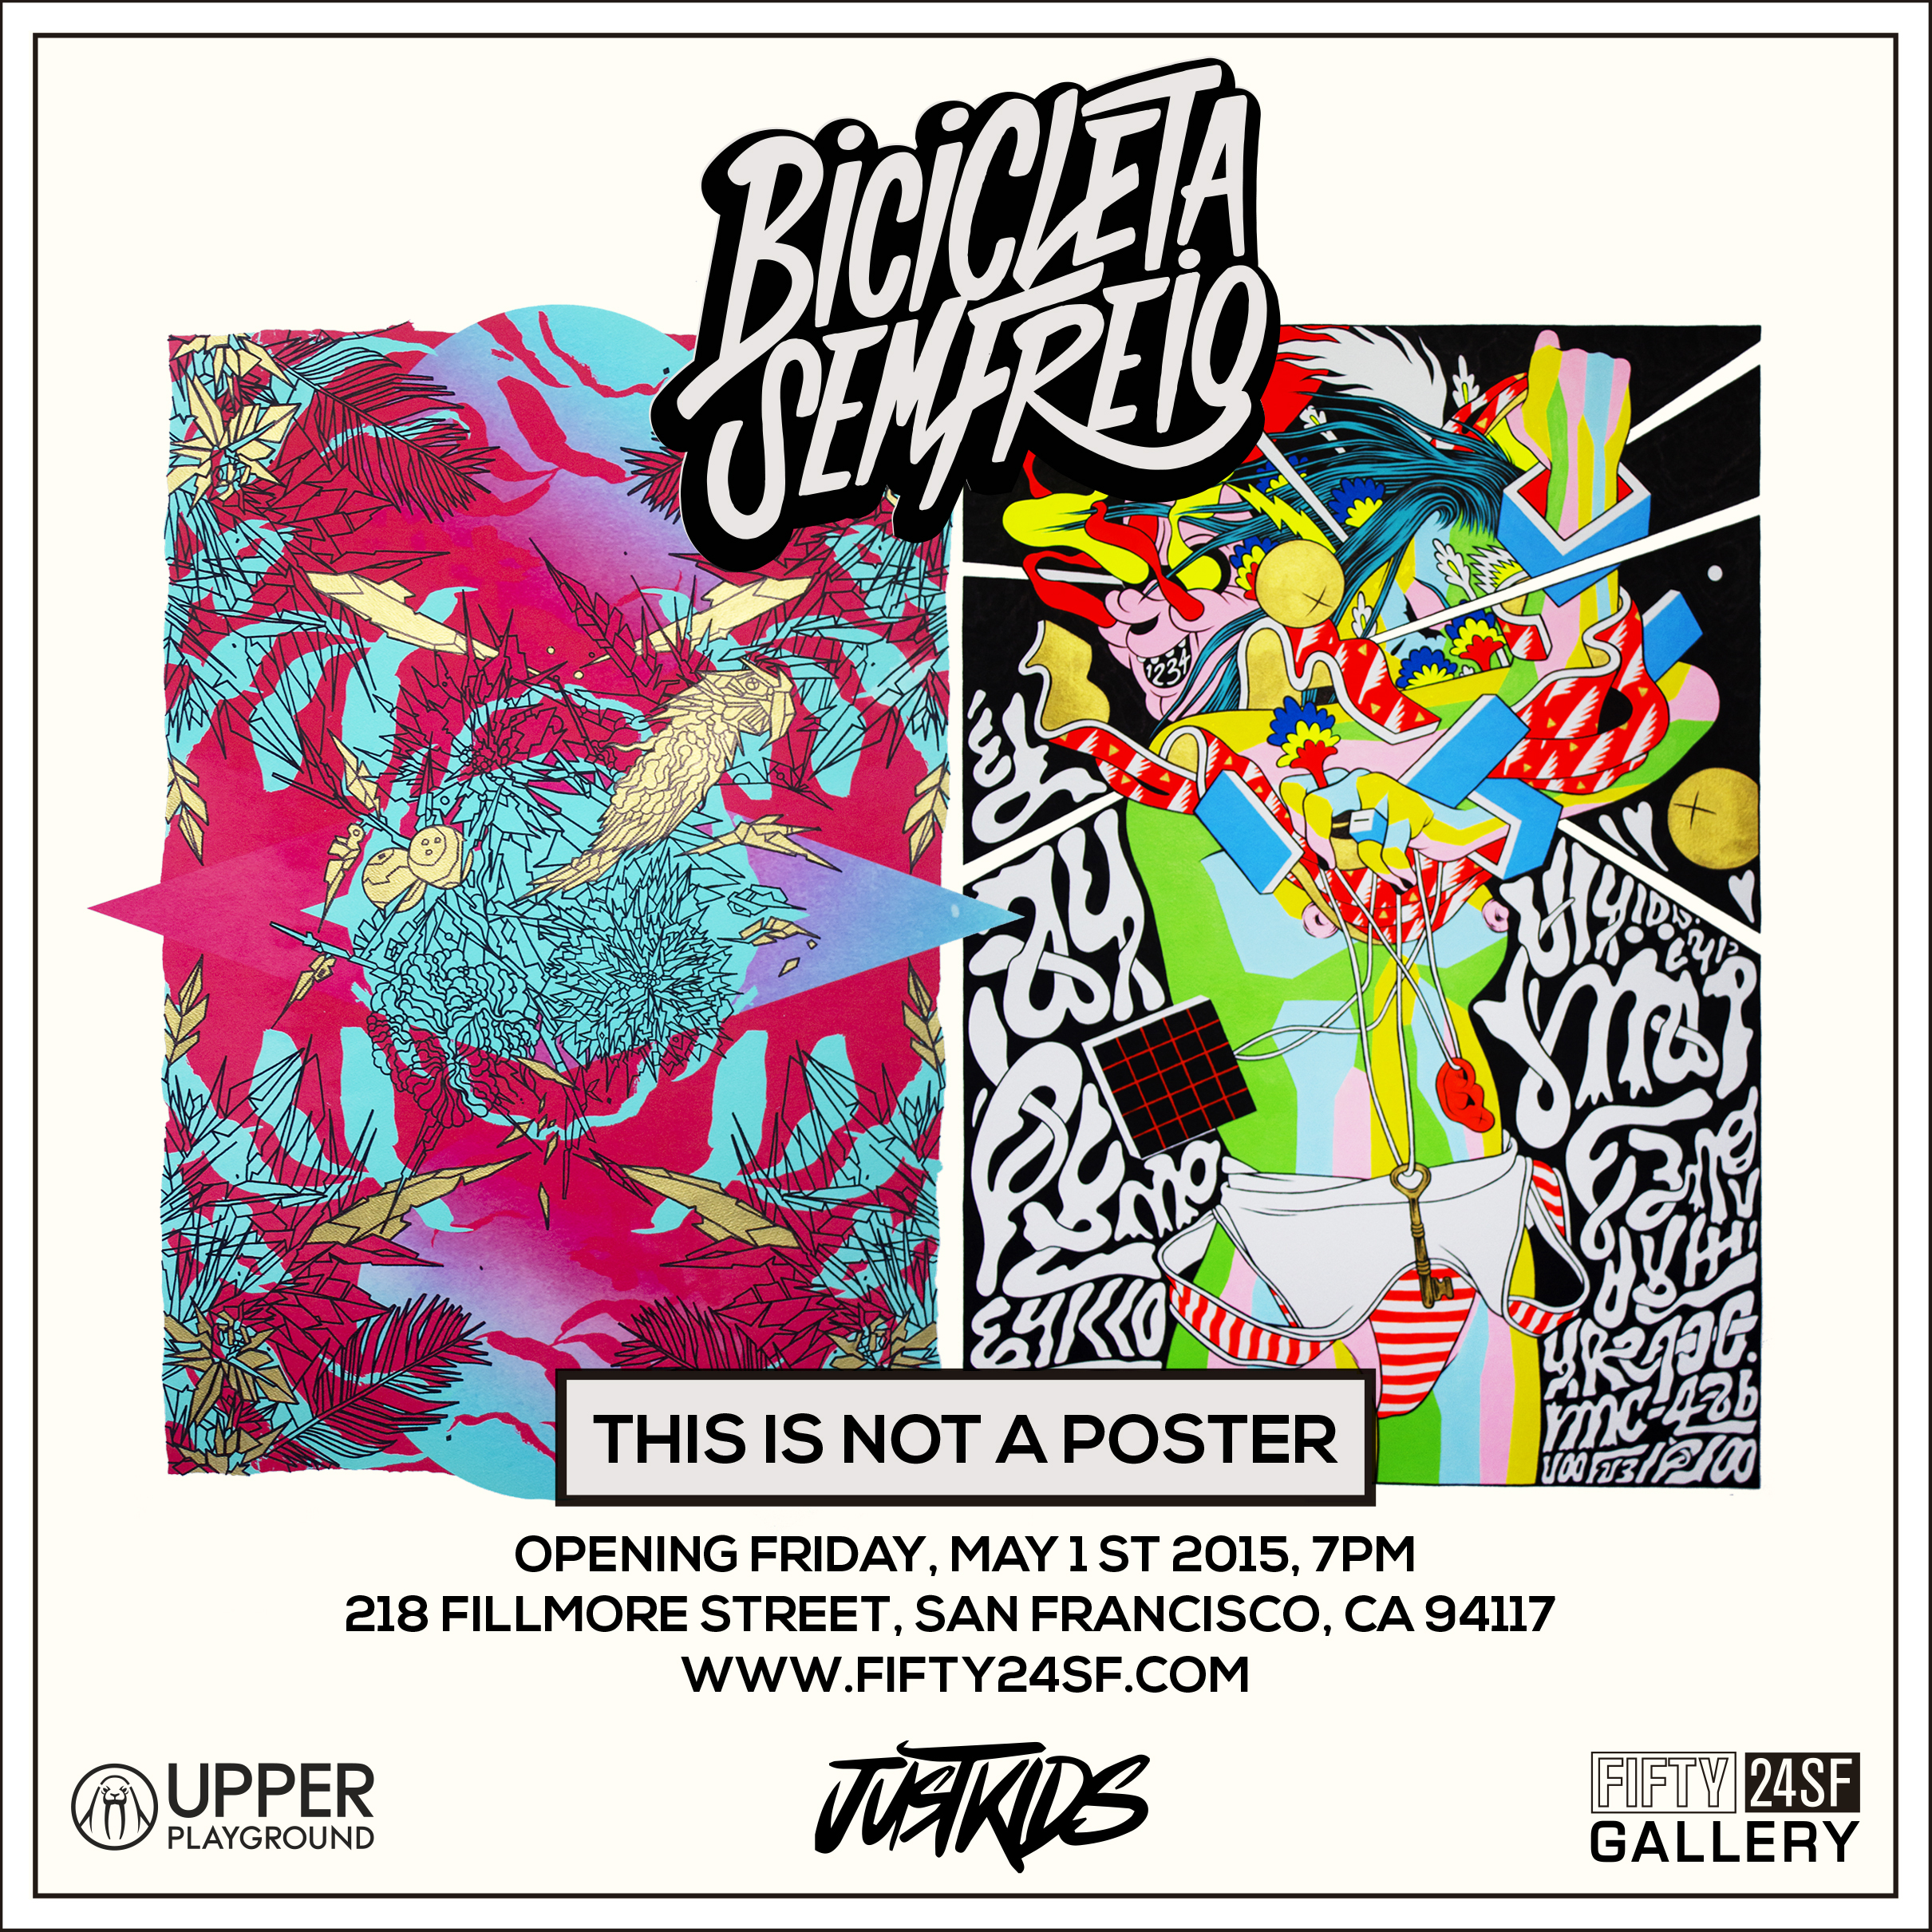 BICICLETA SEM FREIO - THIS IS NOT A POSTER